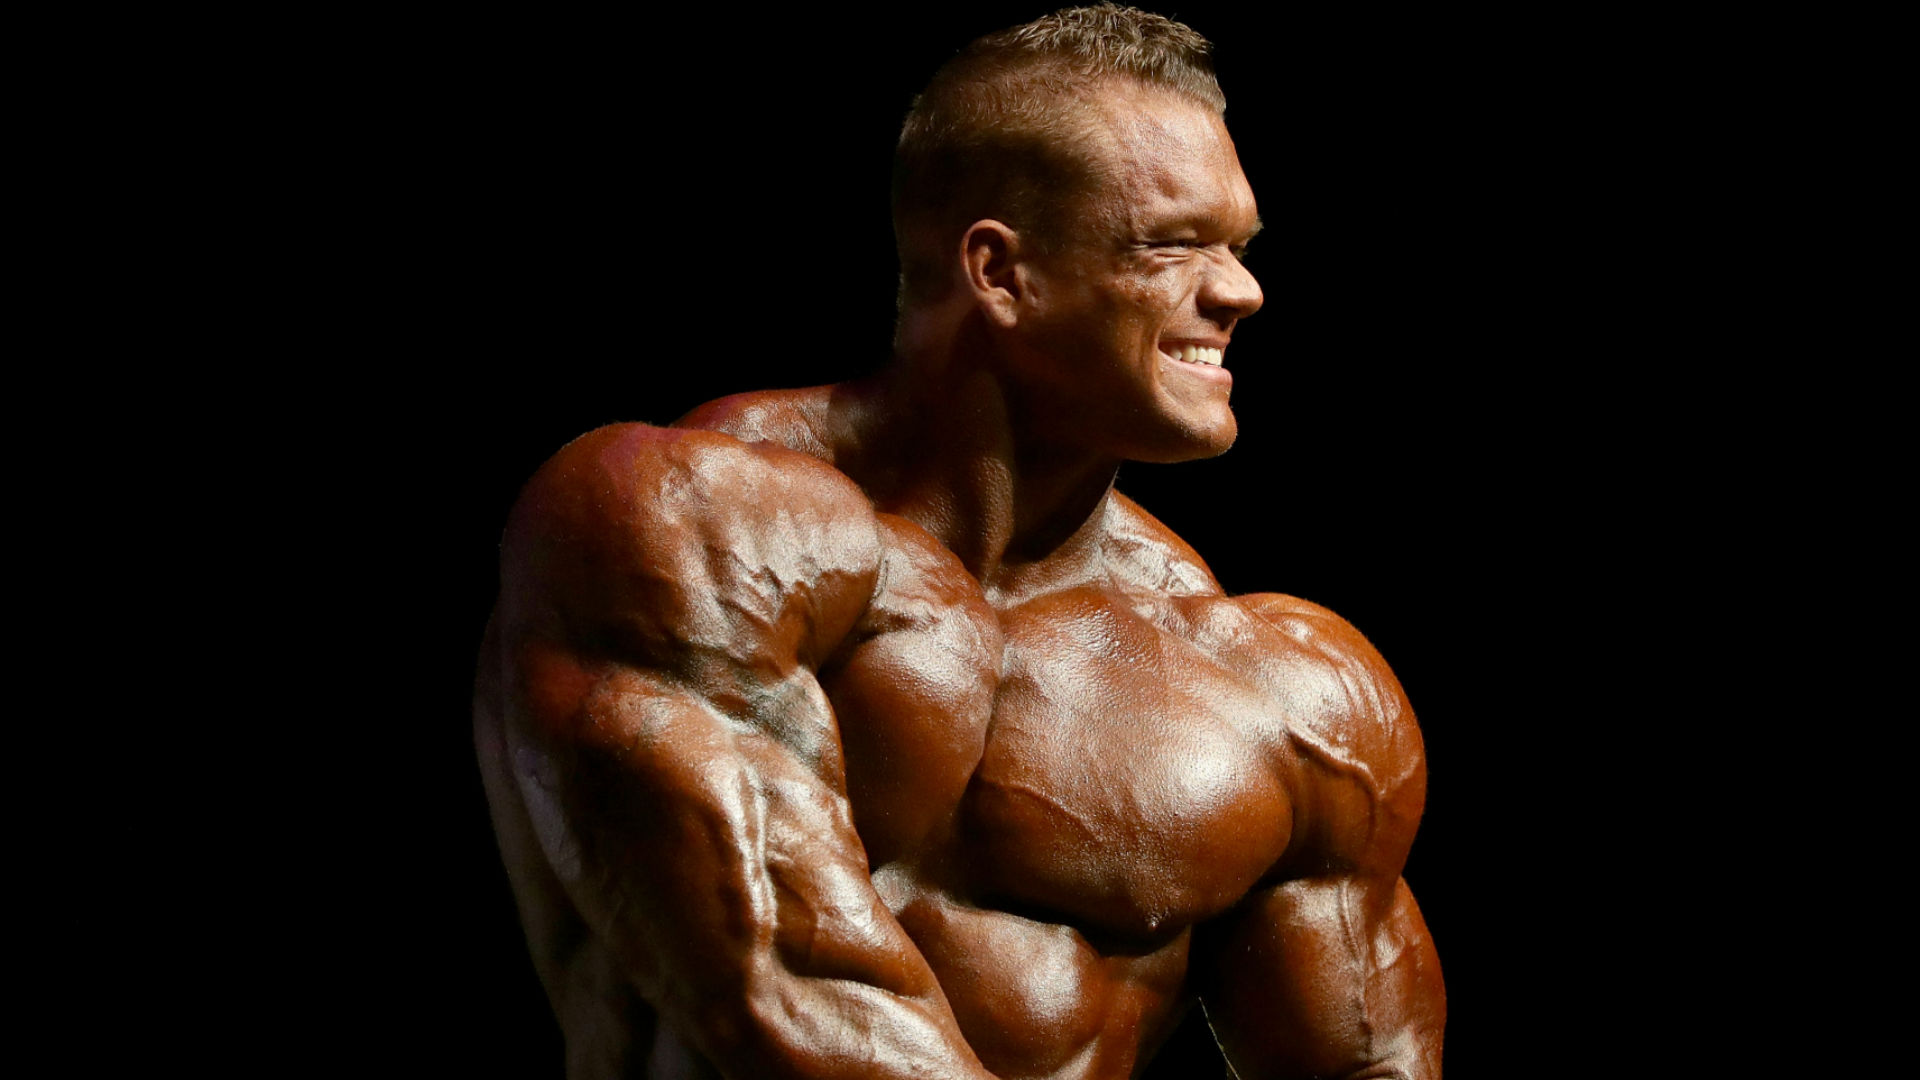 Dallas McCarver died at aged 26, Death cause is choking on food